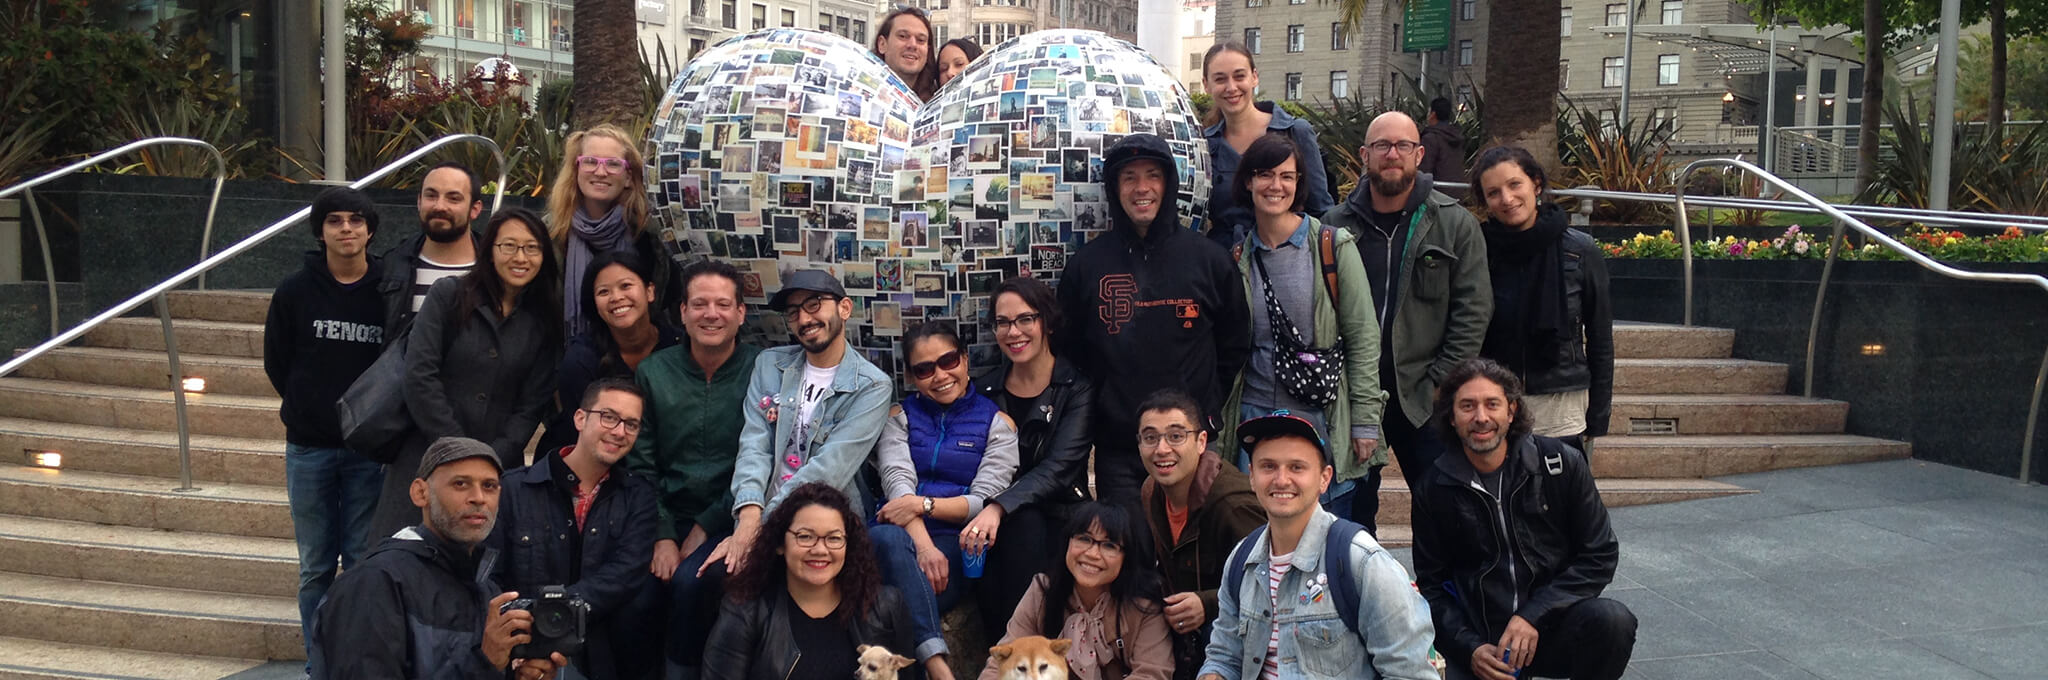 Group of people in front of polaroid-covered heart sculpture